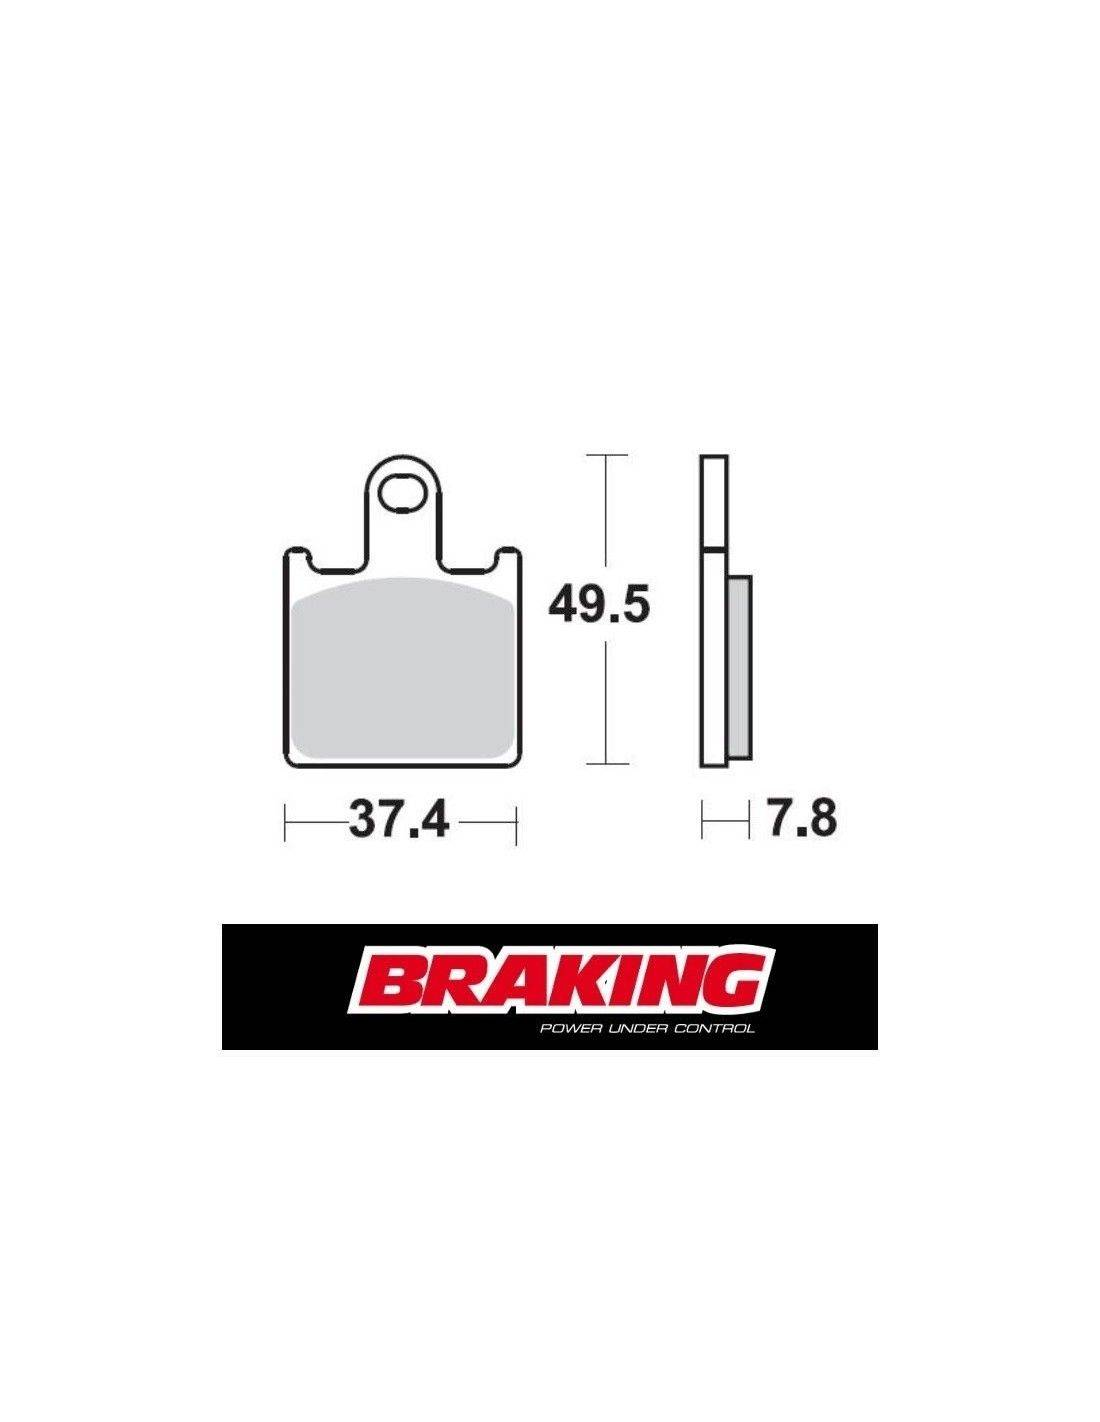 Braking P1R racing brake pads Kawasaki ZZR 1400 ABS 2006-2017